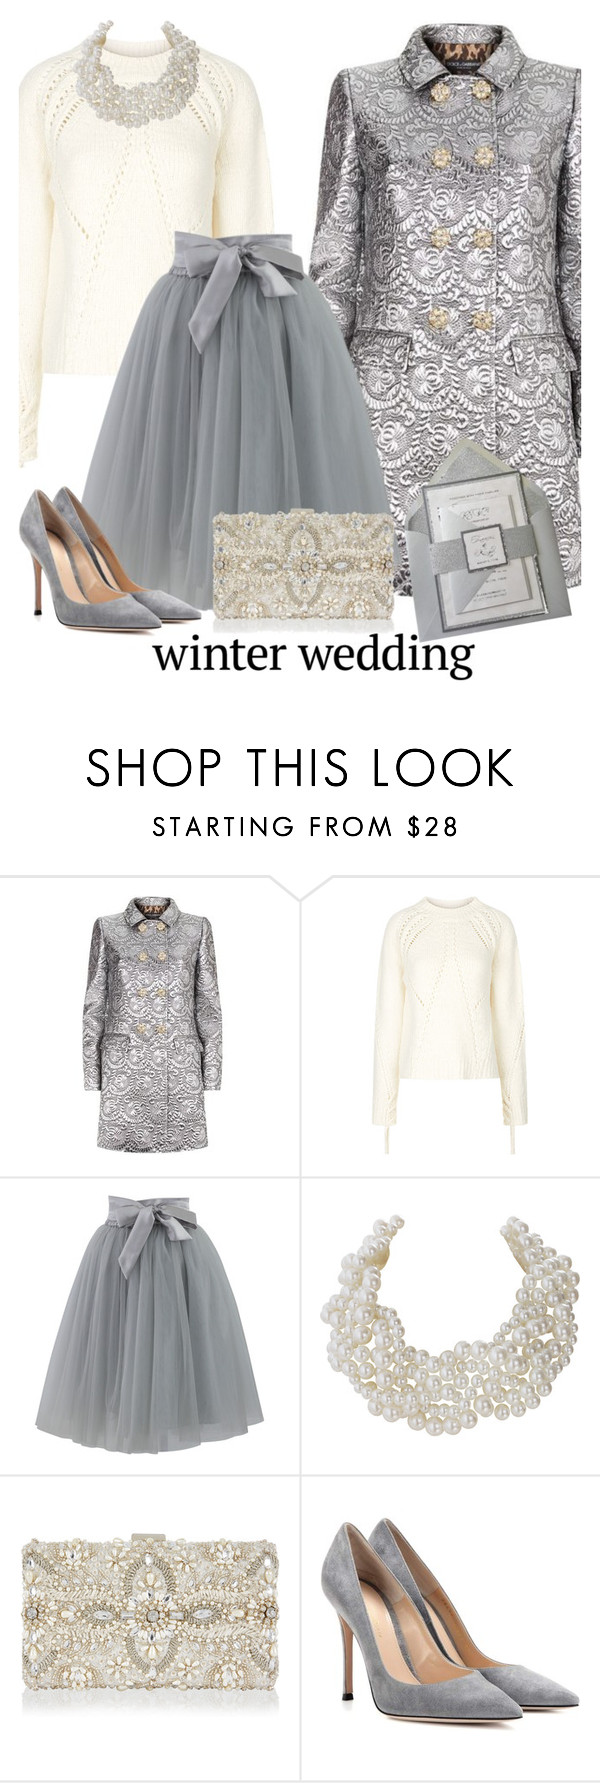 """""""True Romance: Winter Wedding 3"""" by beleev ❤ liked on Polyvore featuring Dolce&Gabbana, 3.1 Phillip Lim, Chicwish, Humble Chic, Monsoon, Gianvito Rossi and winterwedding"""